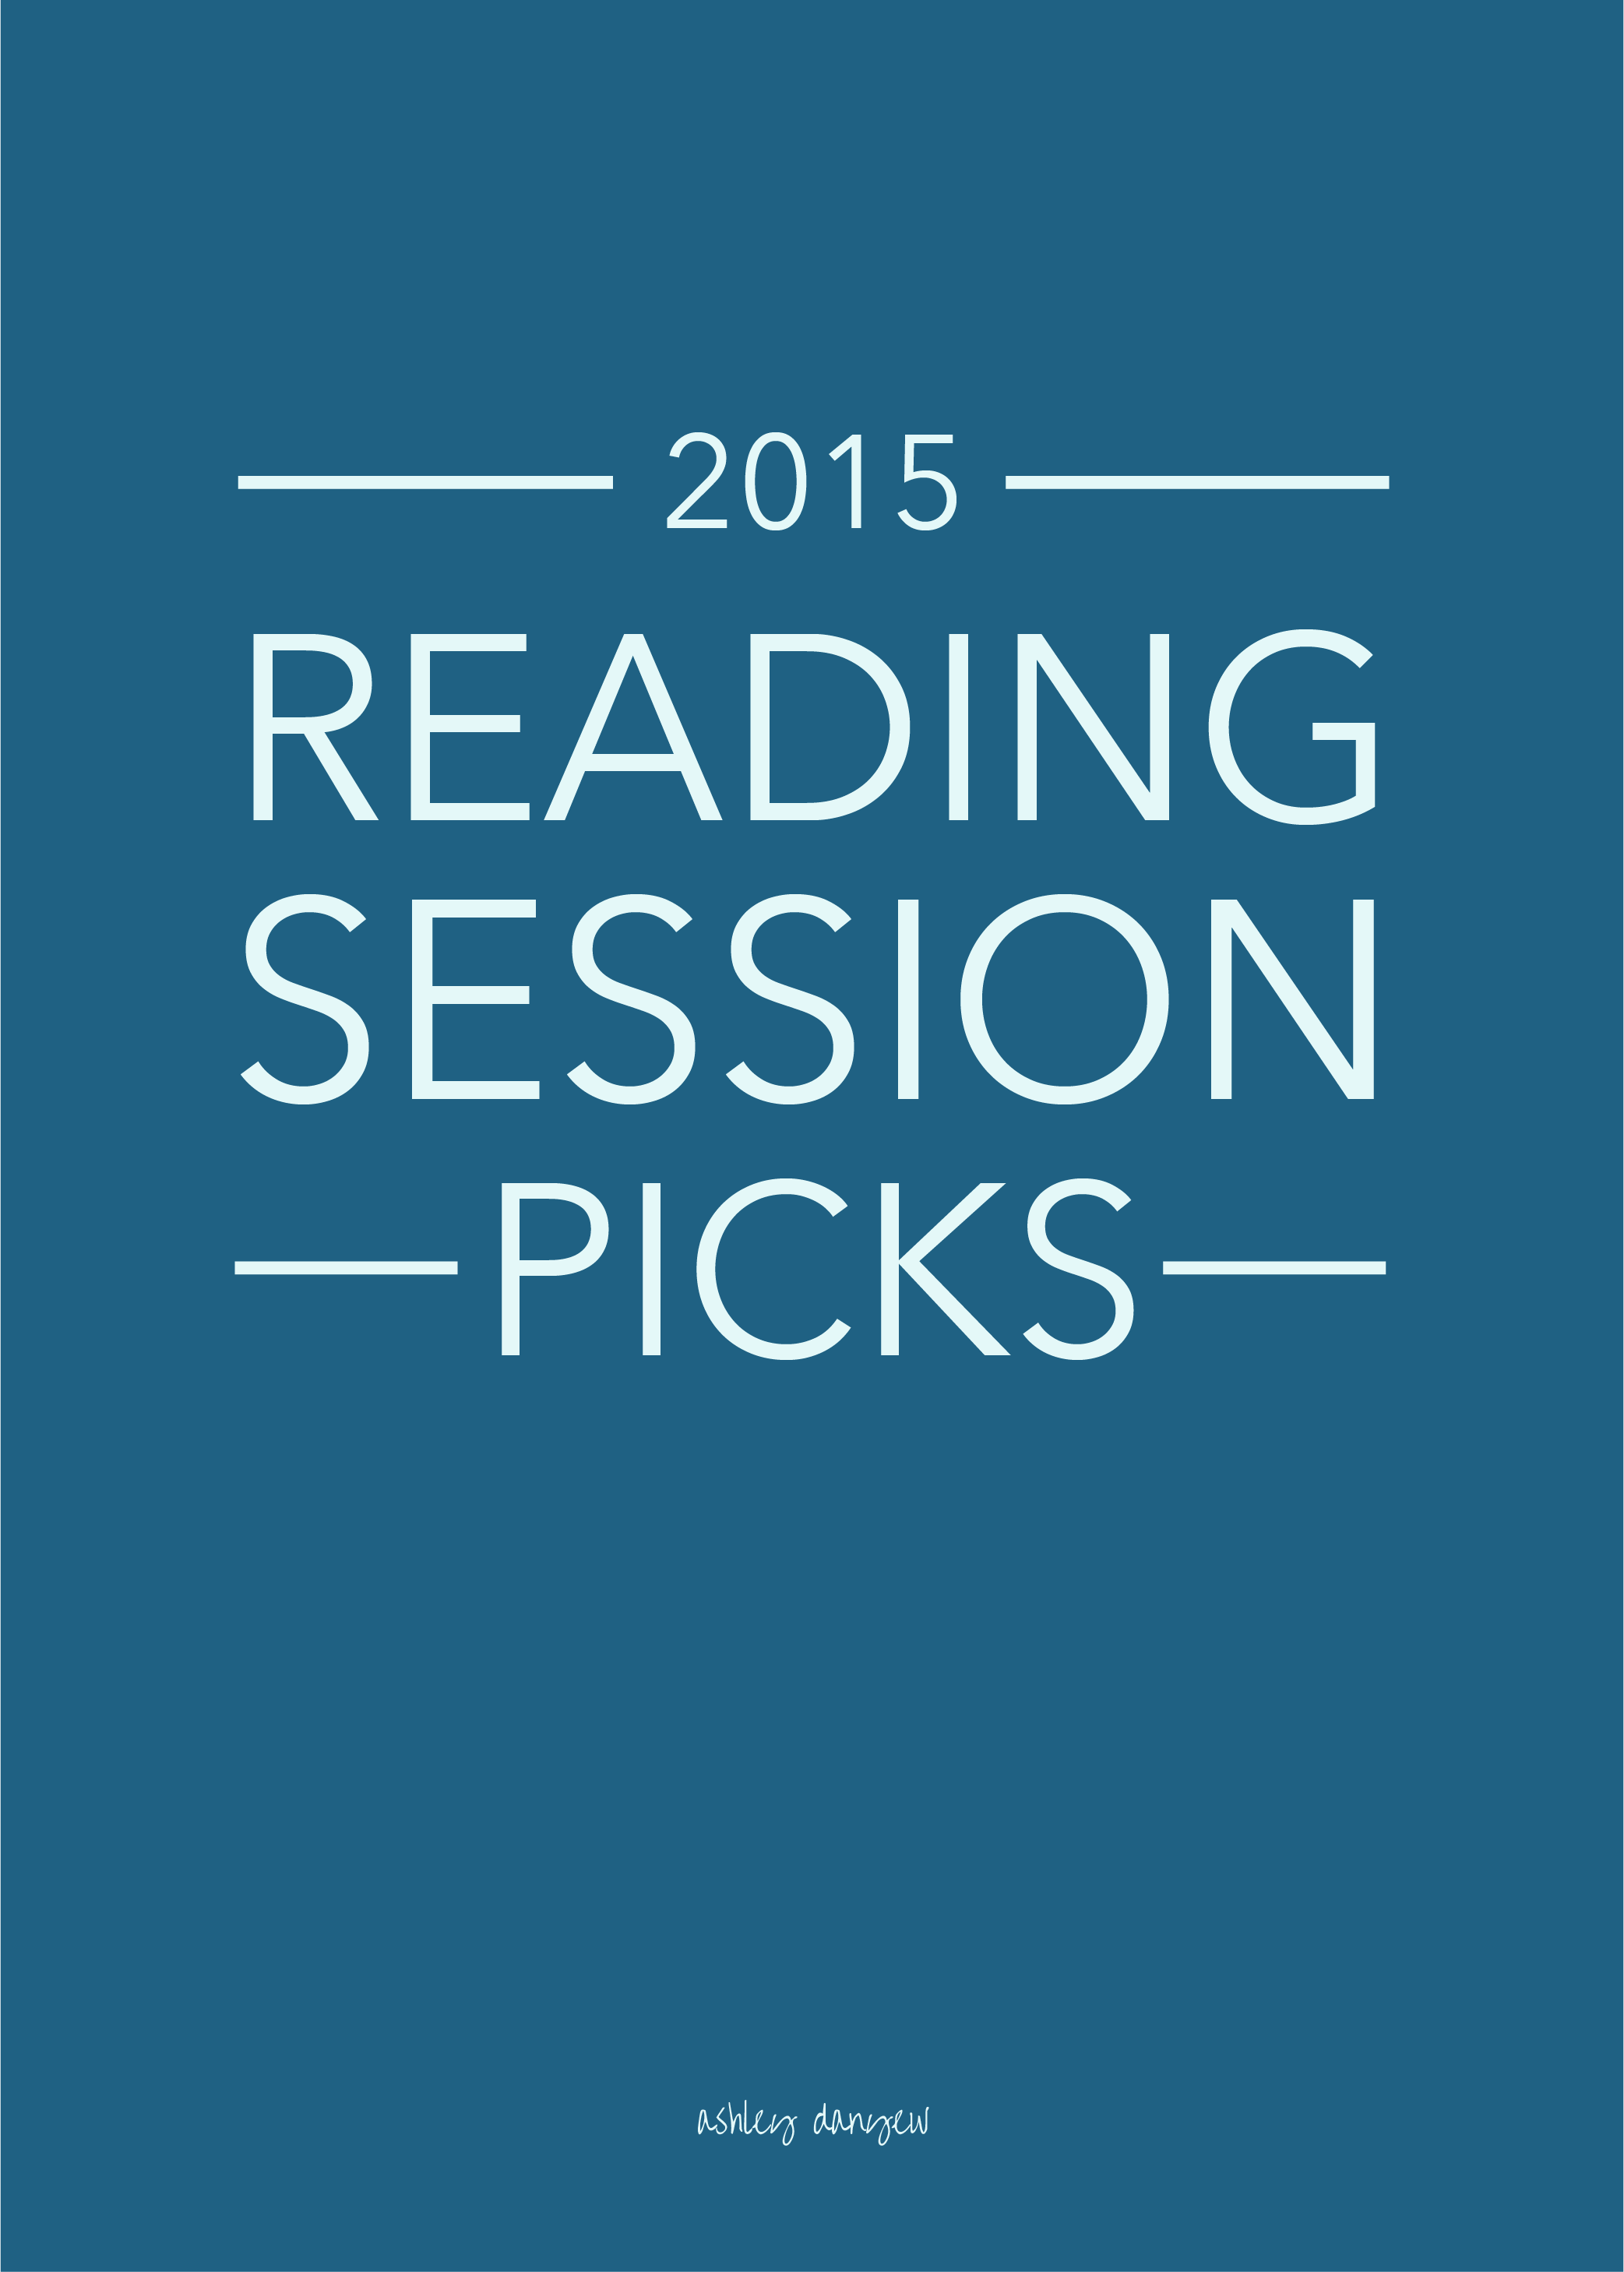 Copy of 2015 Reading Session Picks